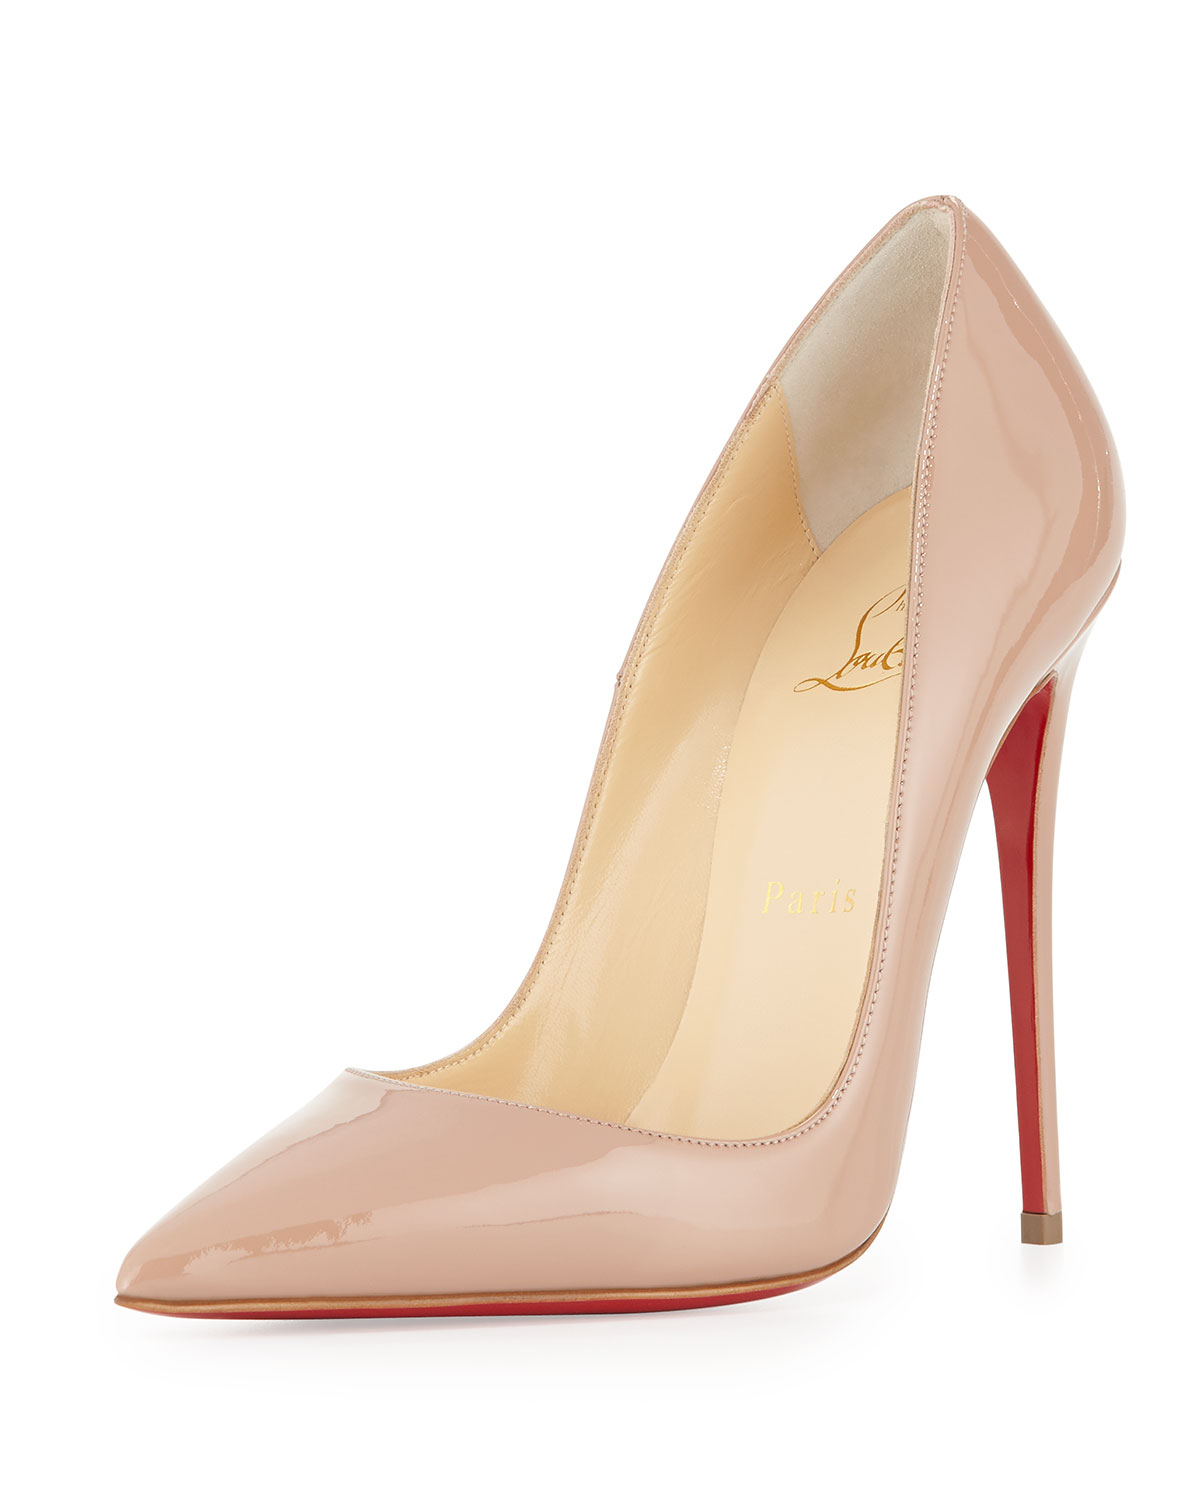 218061106ef So Kate Patent 120mm Red Sole Pump, Nude